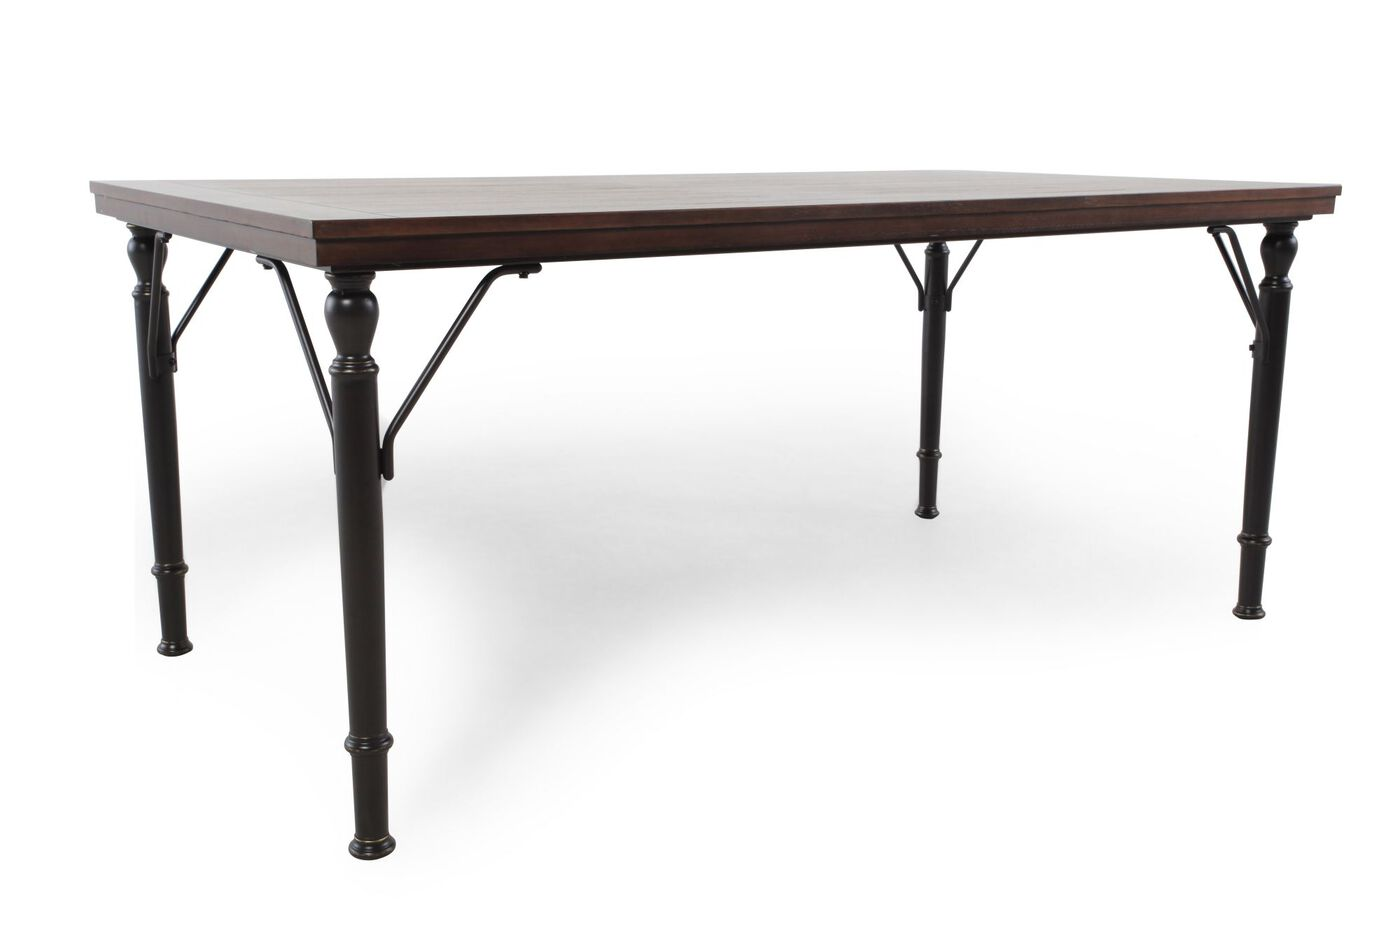 Ashley Tripton Dining Table Mathis Brothers Furniture : ASH D53004725 1 from mathisbrothers.com size 1400 x 933 jpeg 44kB